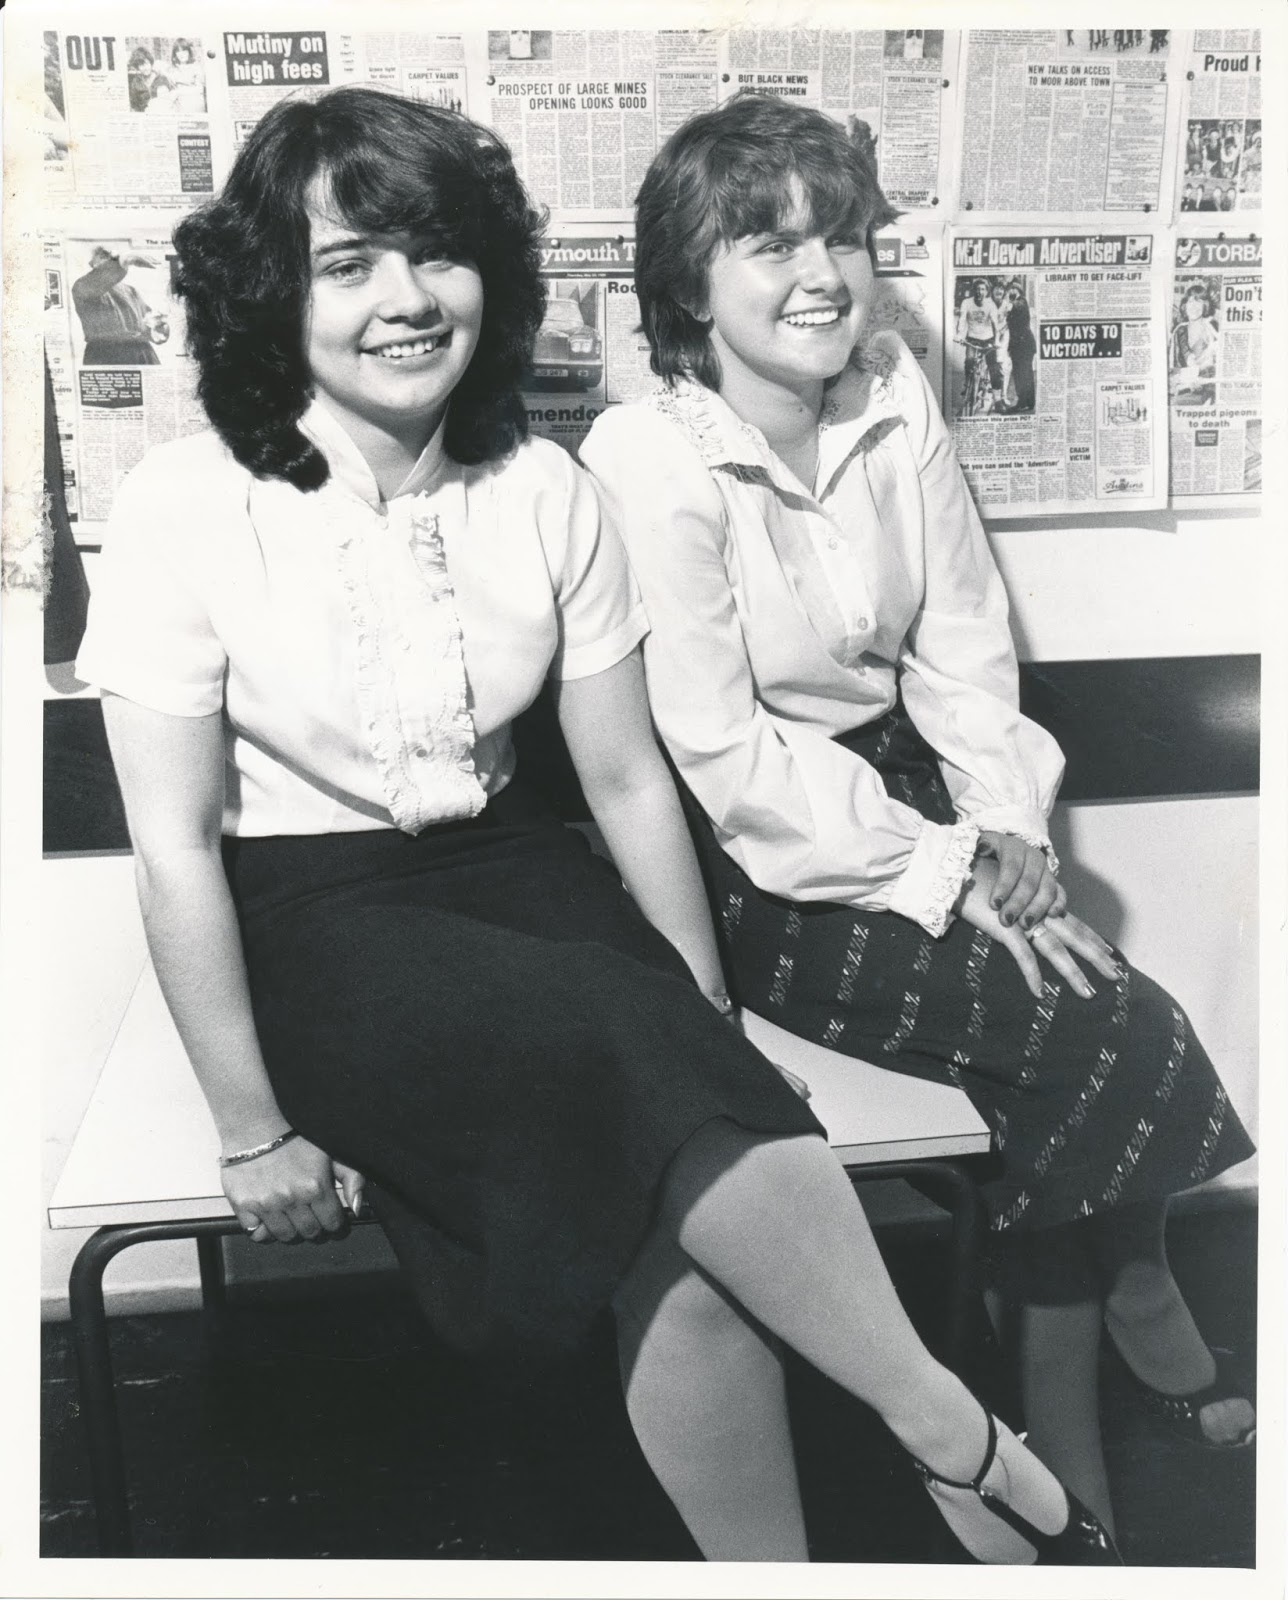 Gail Hanlon (then Tyler) and Julie Skentelbery (then Stanton) as MGN Bubbly Birds in the Mirror Group Newspapers house magazine, early 1980s